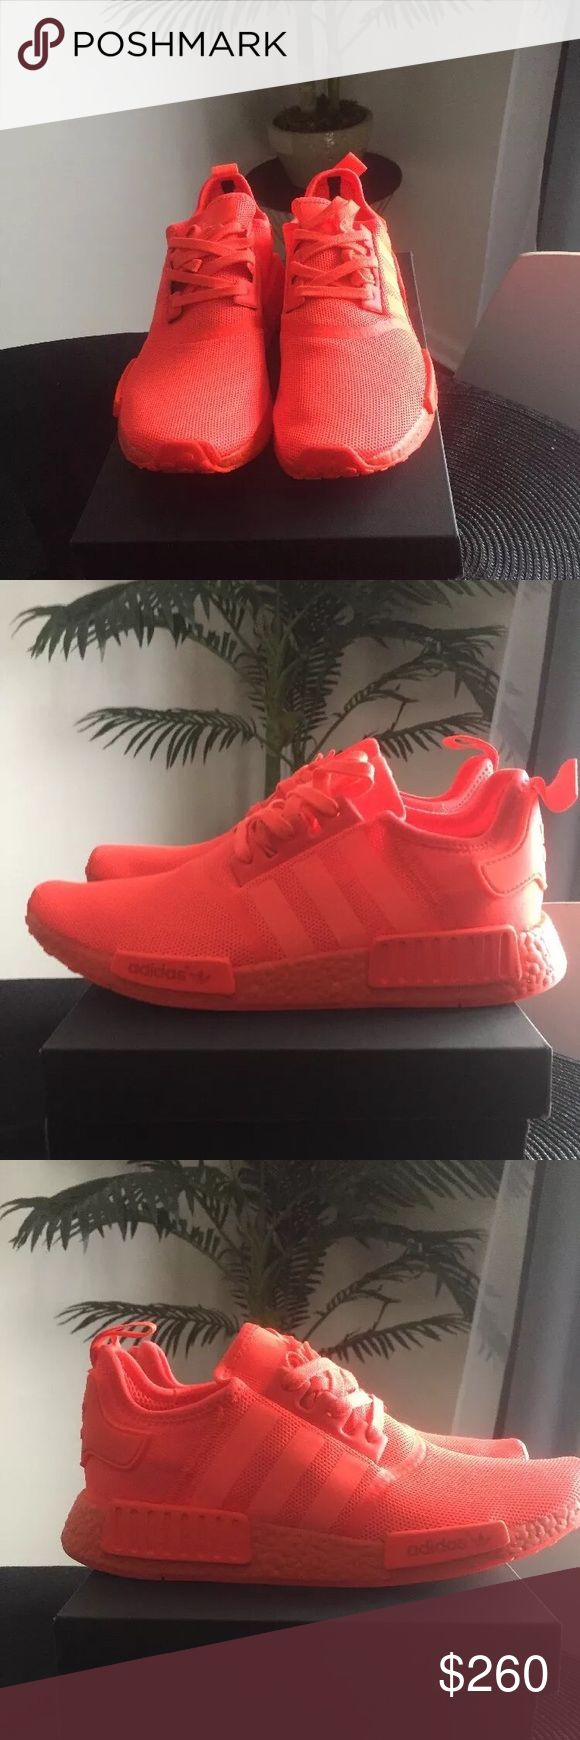 Adidas NMD R1 TRIPLE SOLAR RED ADIDAS NMD R1 TRIPLE SOLAR RED.   COLOR: SOLAR RED  STYLE# S13507 Adidas Shoes Sneakers